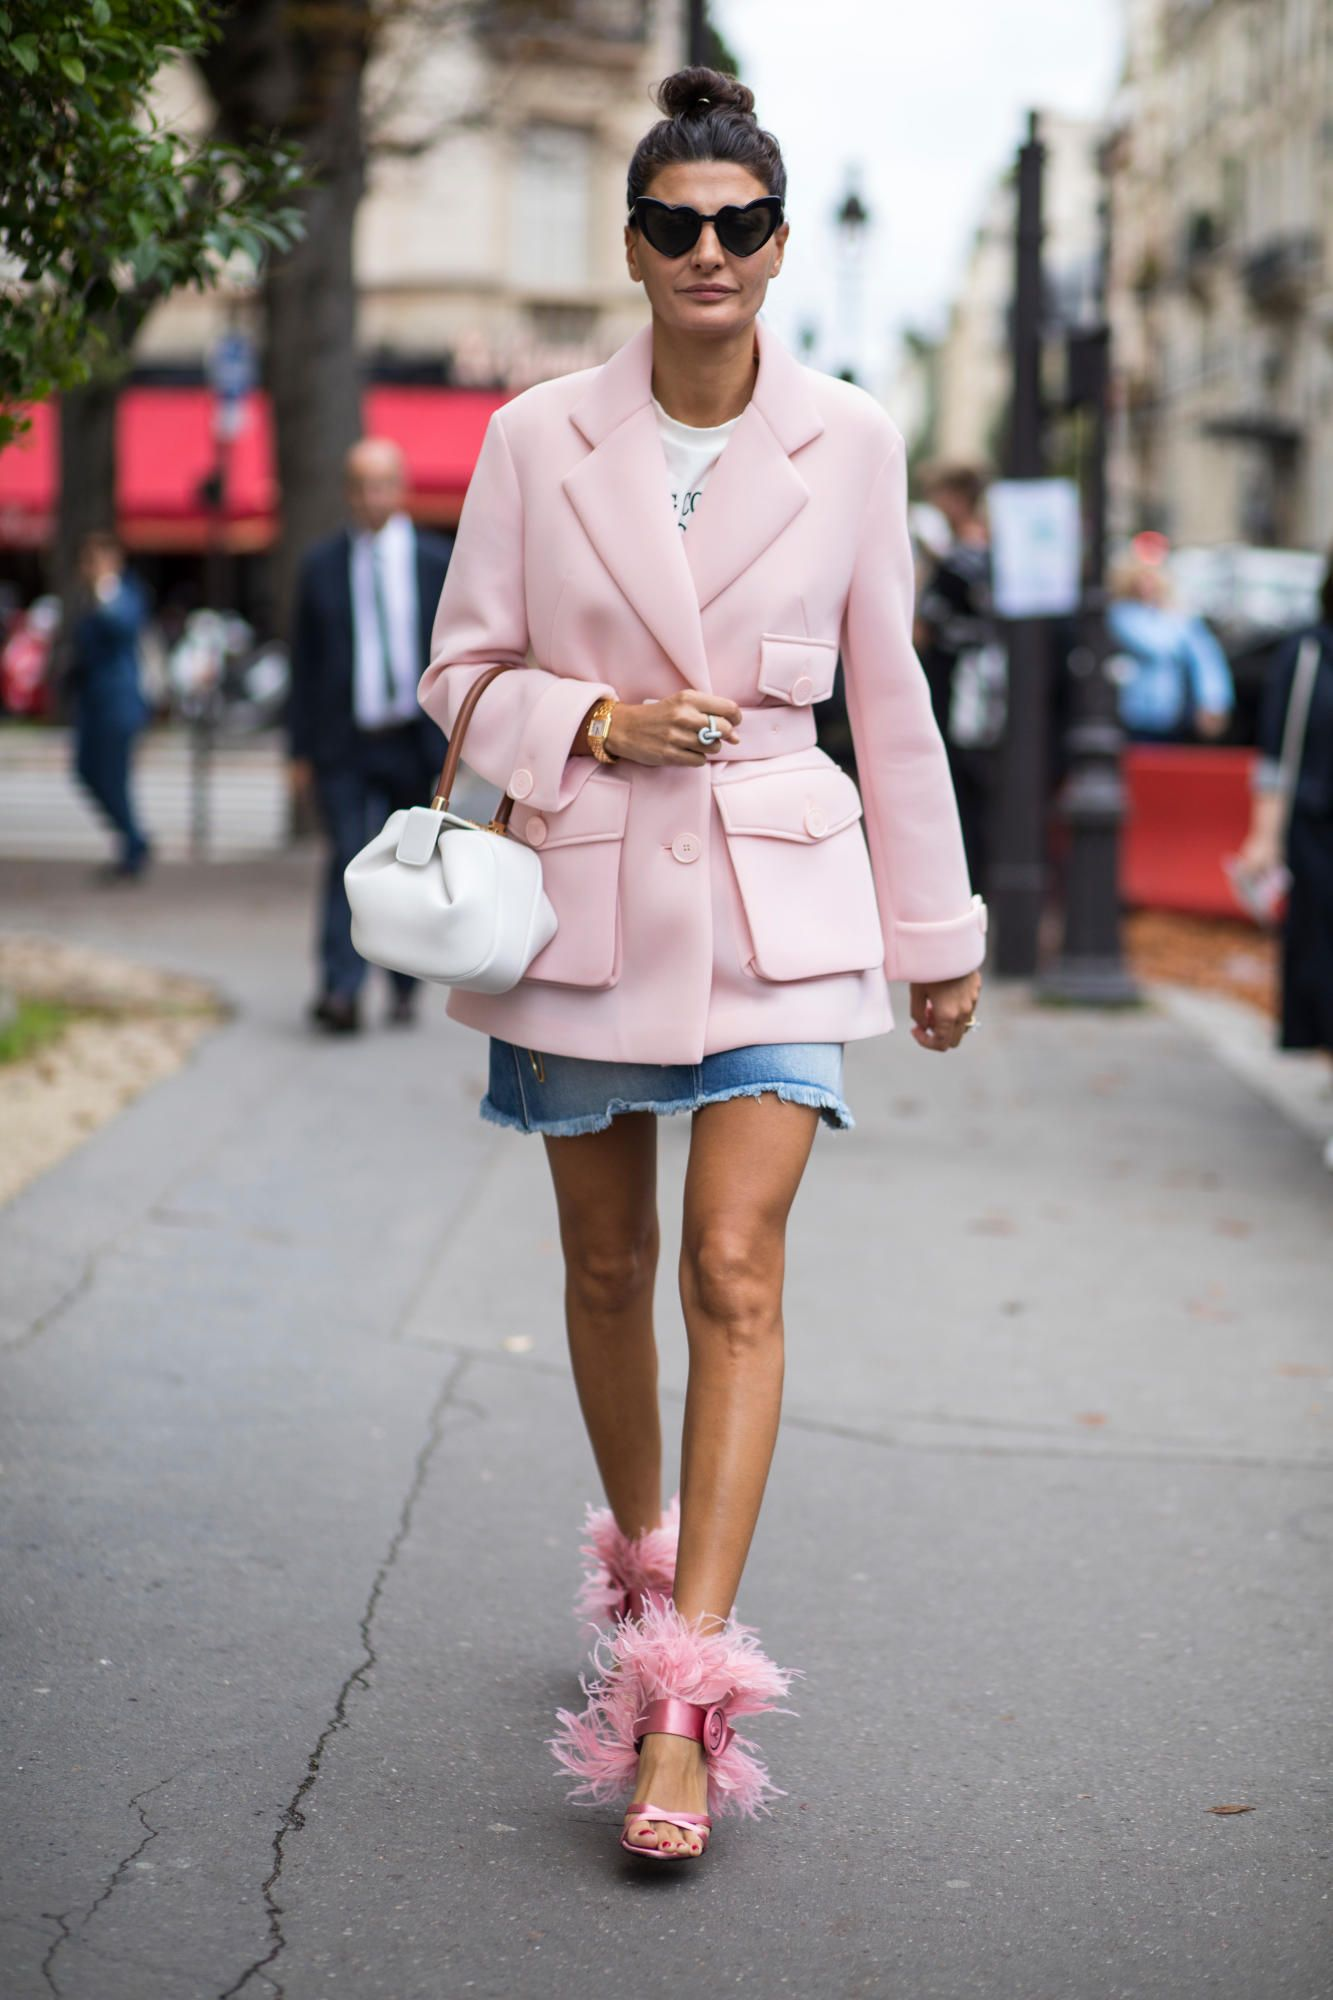 c0a7d5d69be The Best Street Style Looks From Paris Fashion Week Spring 2018 ...